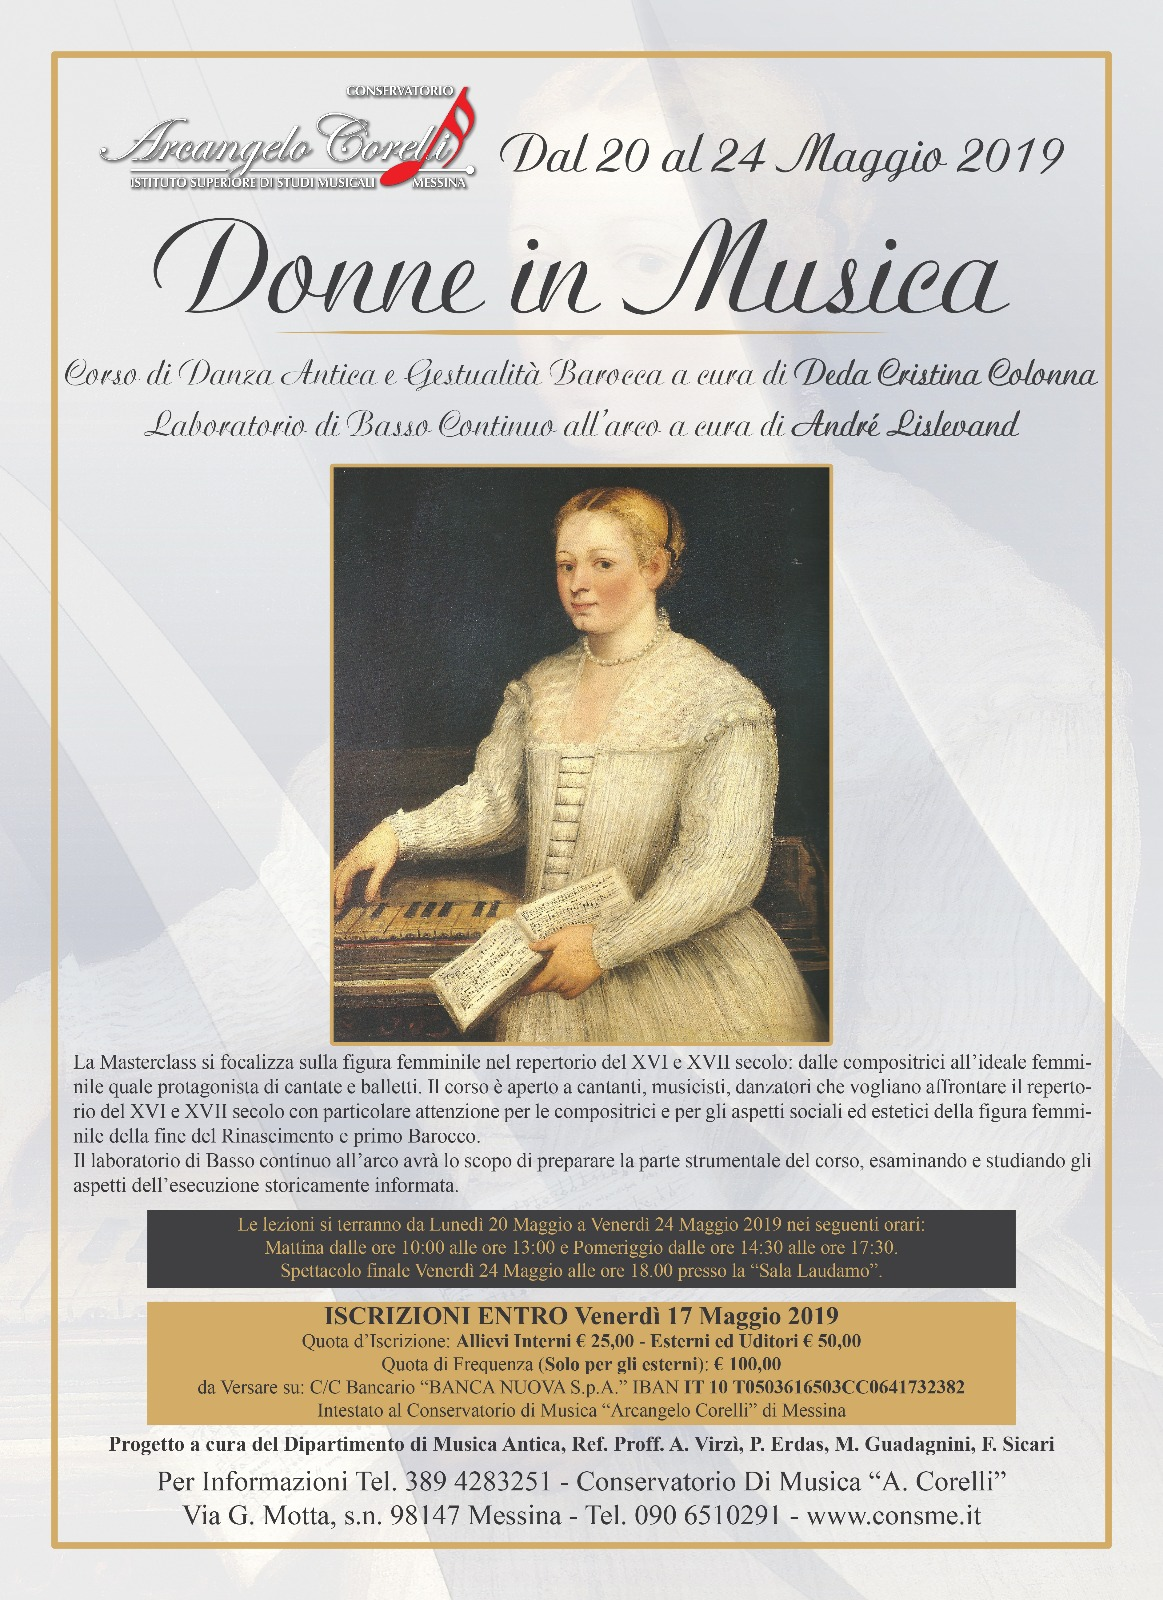 Donne in musica